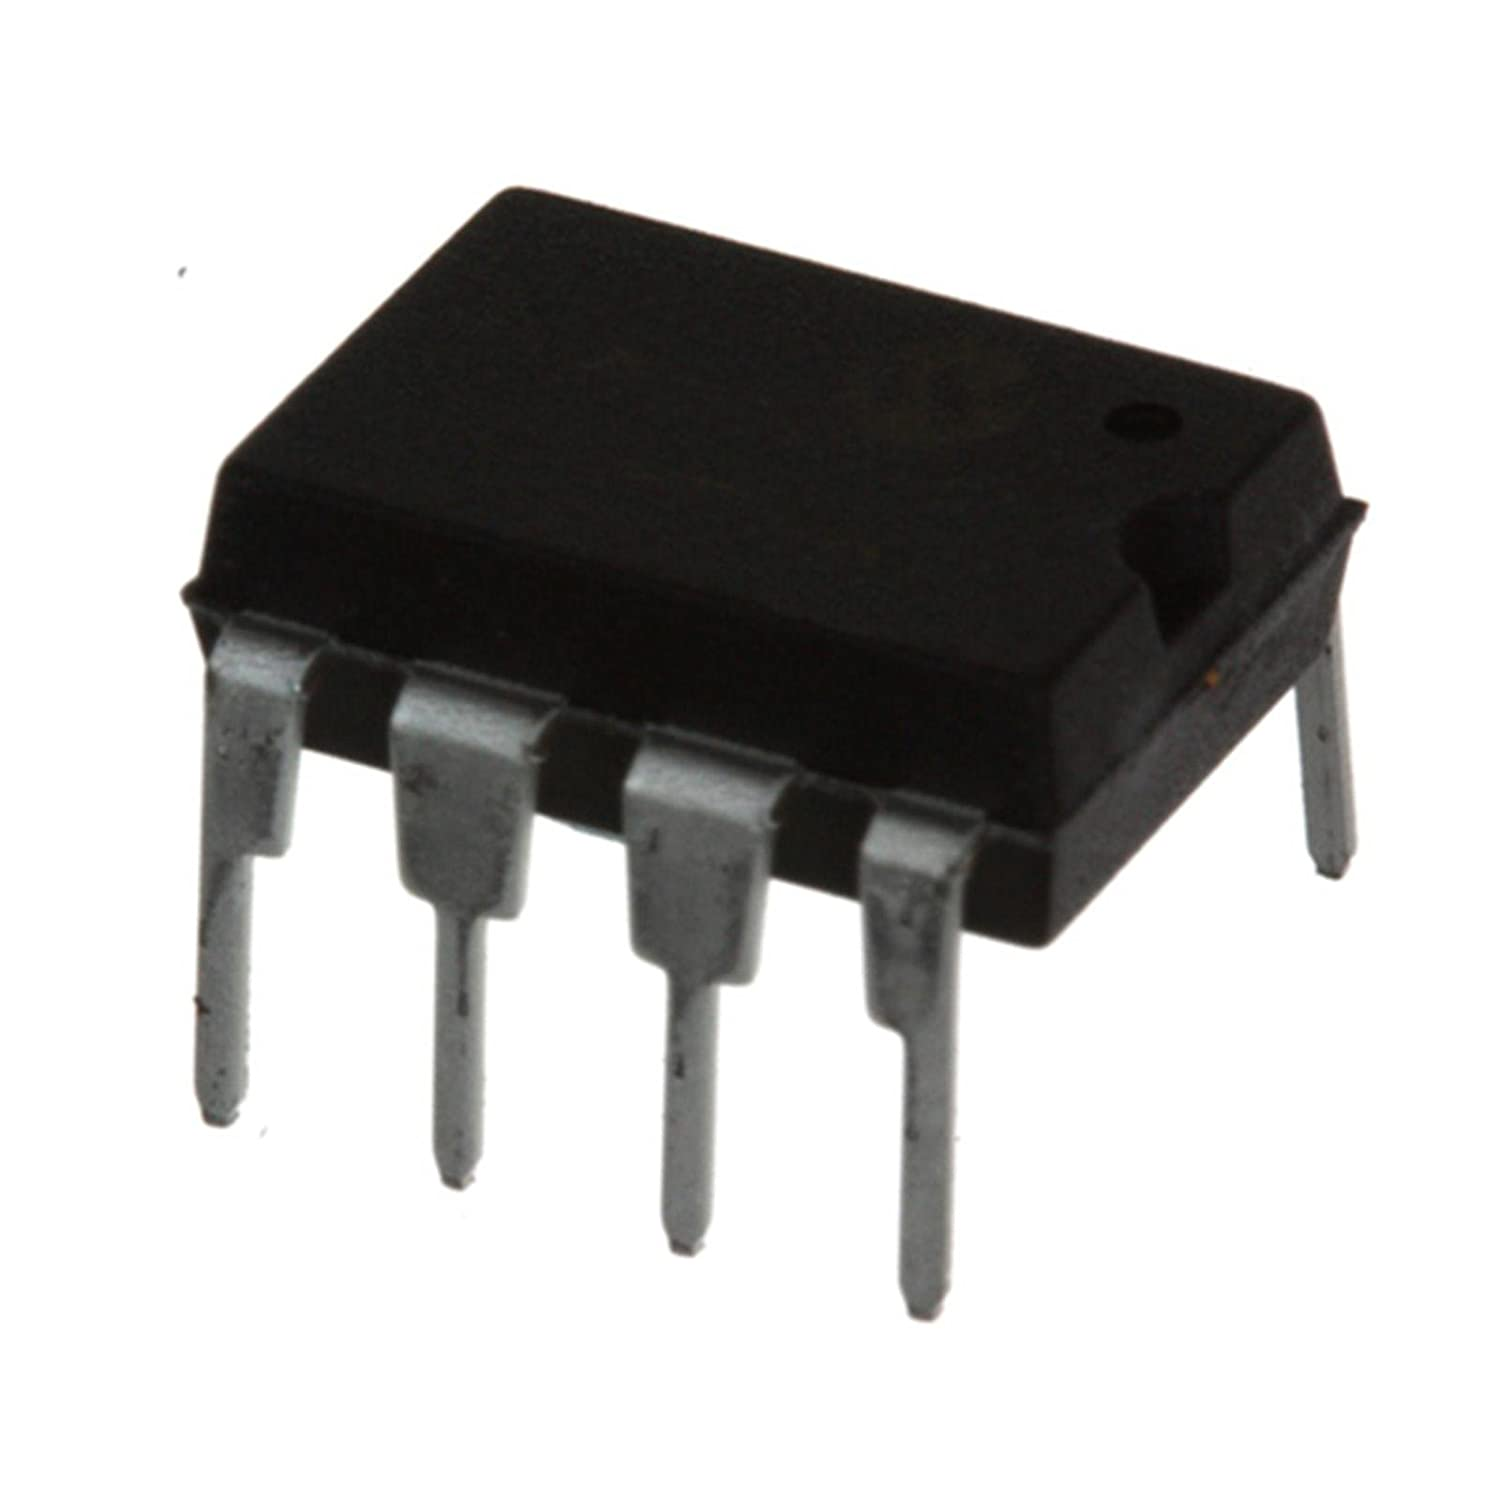 2x LM1458N LM1458 DIP-8 DUAL GENERAL-PURPOSE OPERATIONAL AMPLIFIERS IC National Semiconductor